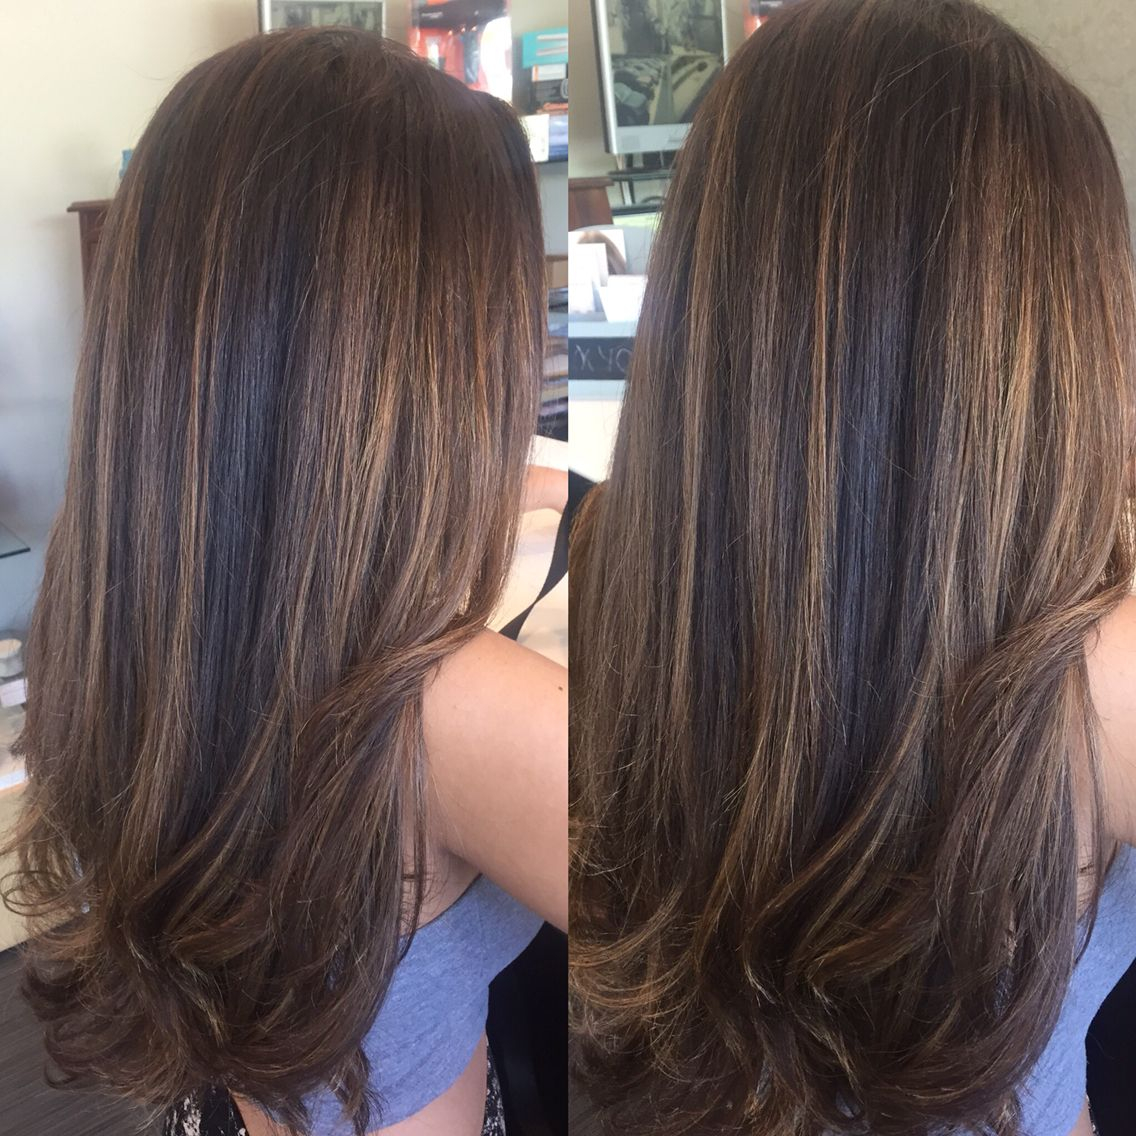 Balayage Highlights On Natural Dark Hair Long Hair Ombre Painted